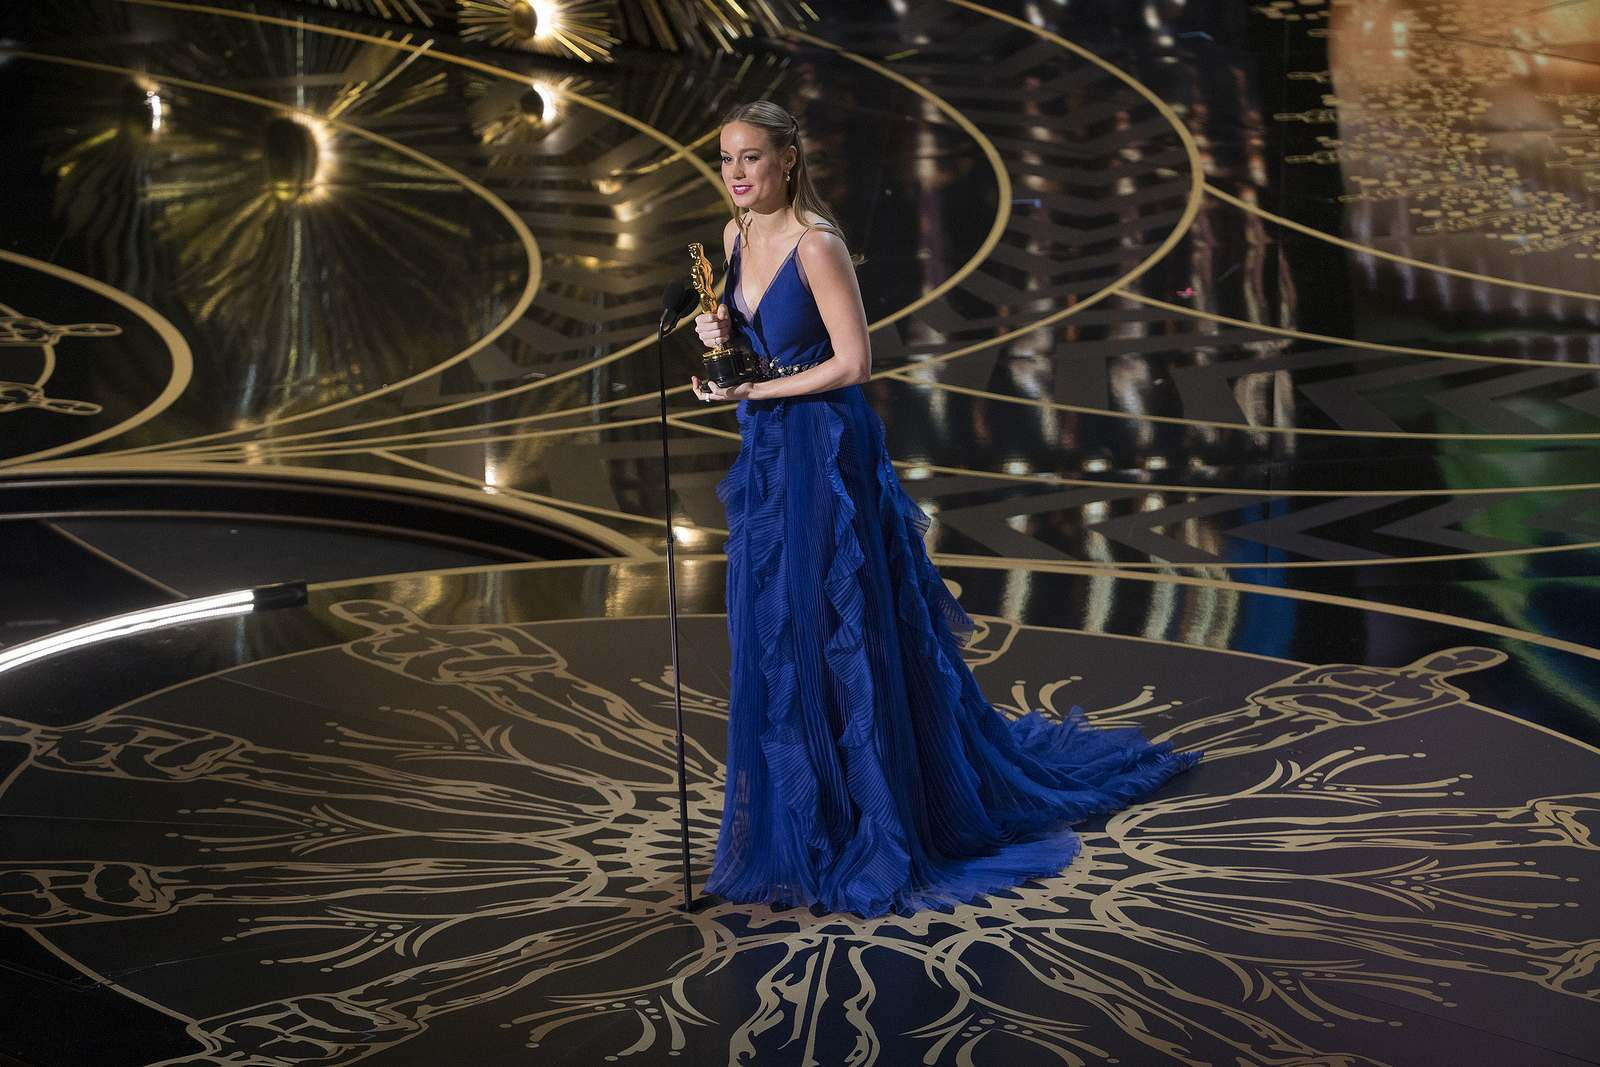 oscars 20163 The 88th Academy Awards Results